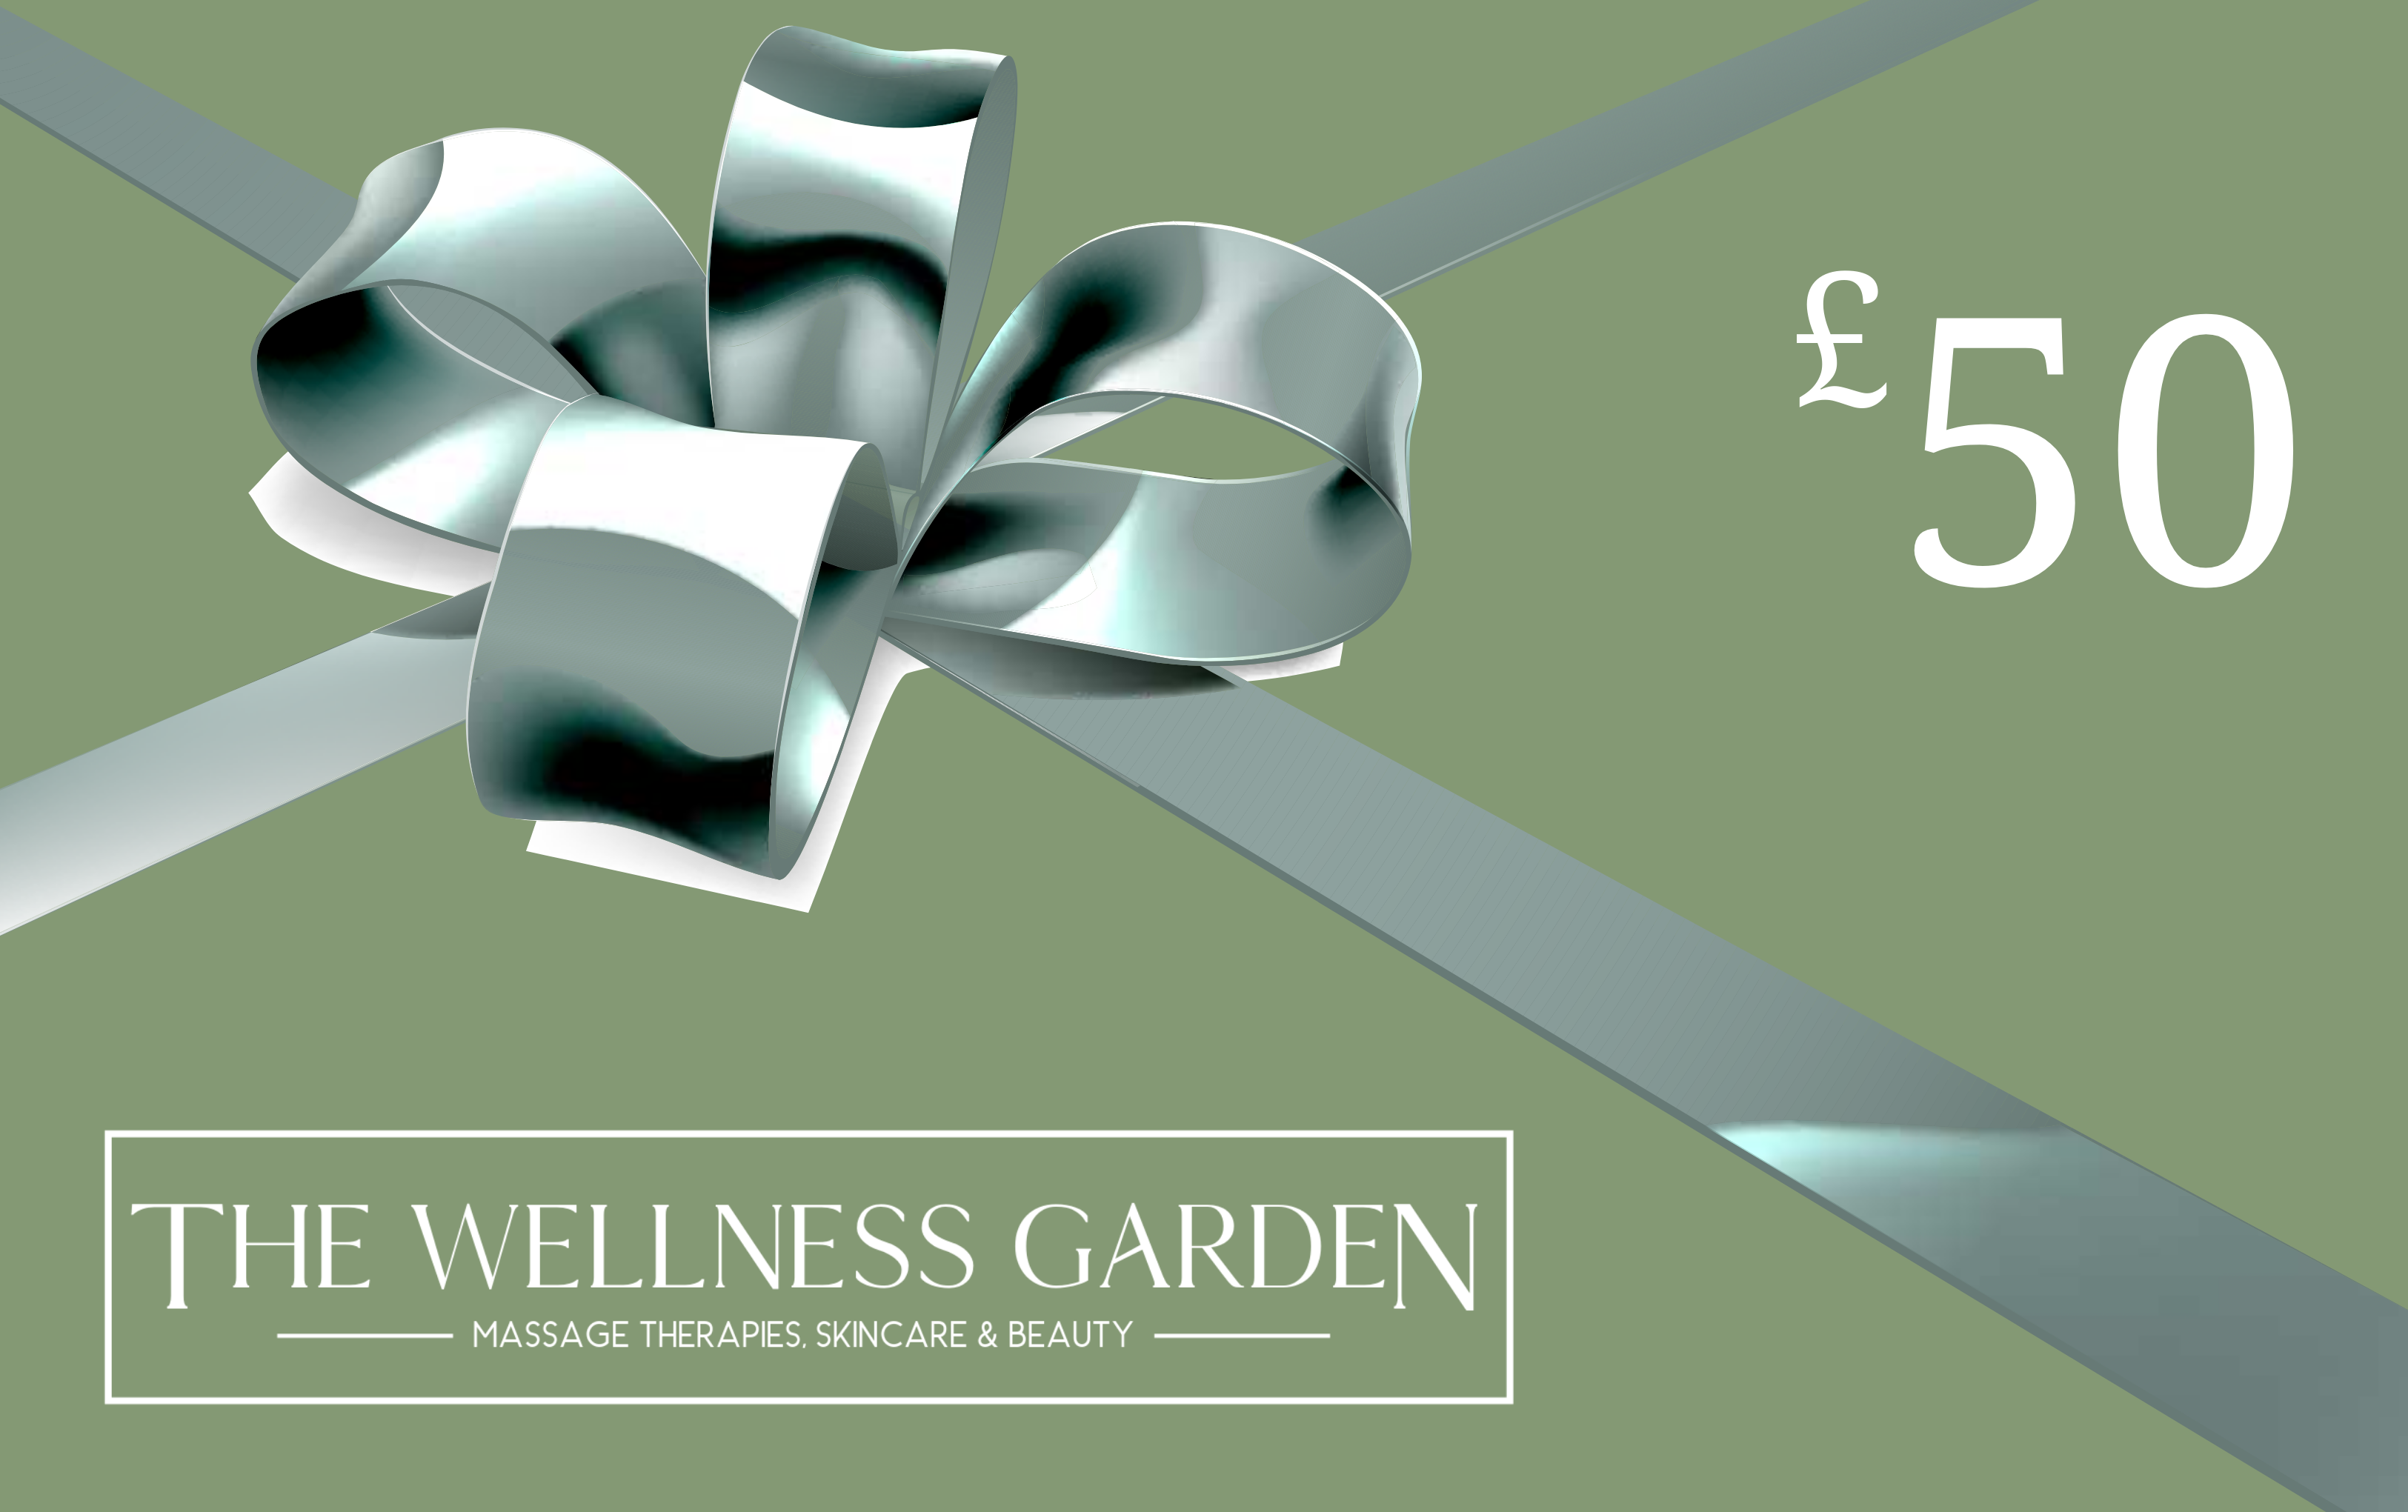 The Wellness Garden £50 gift voucher